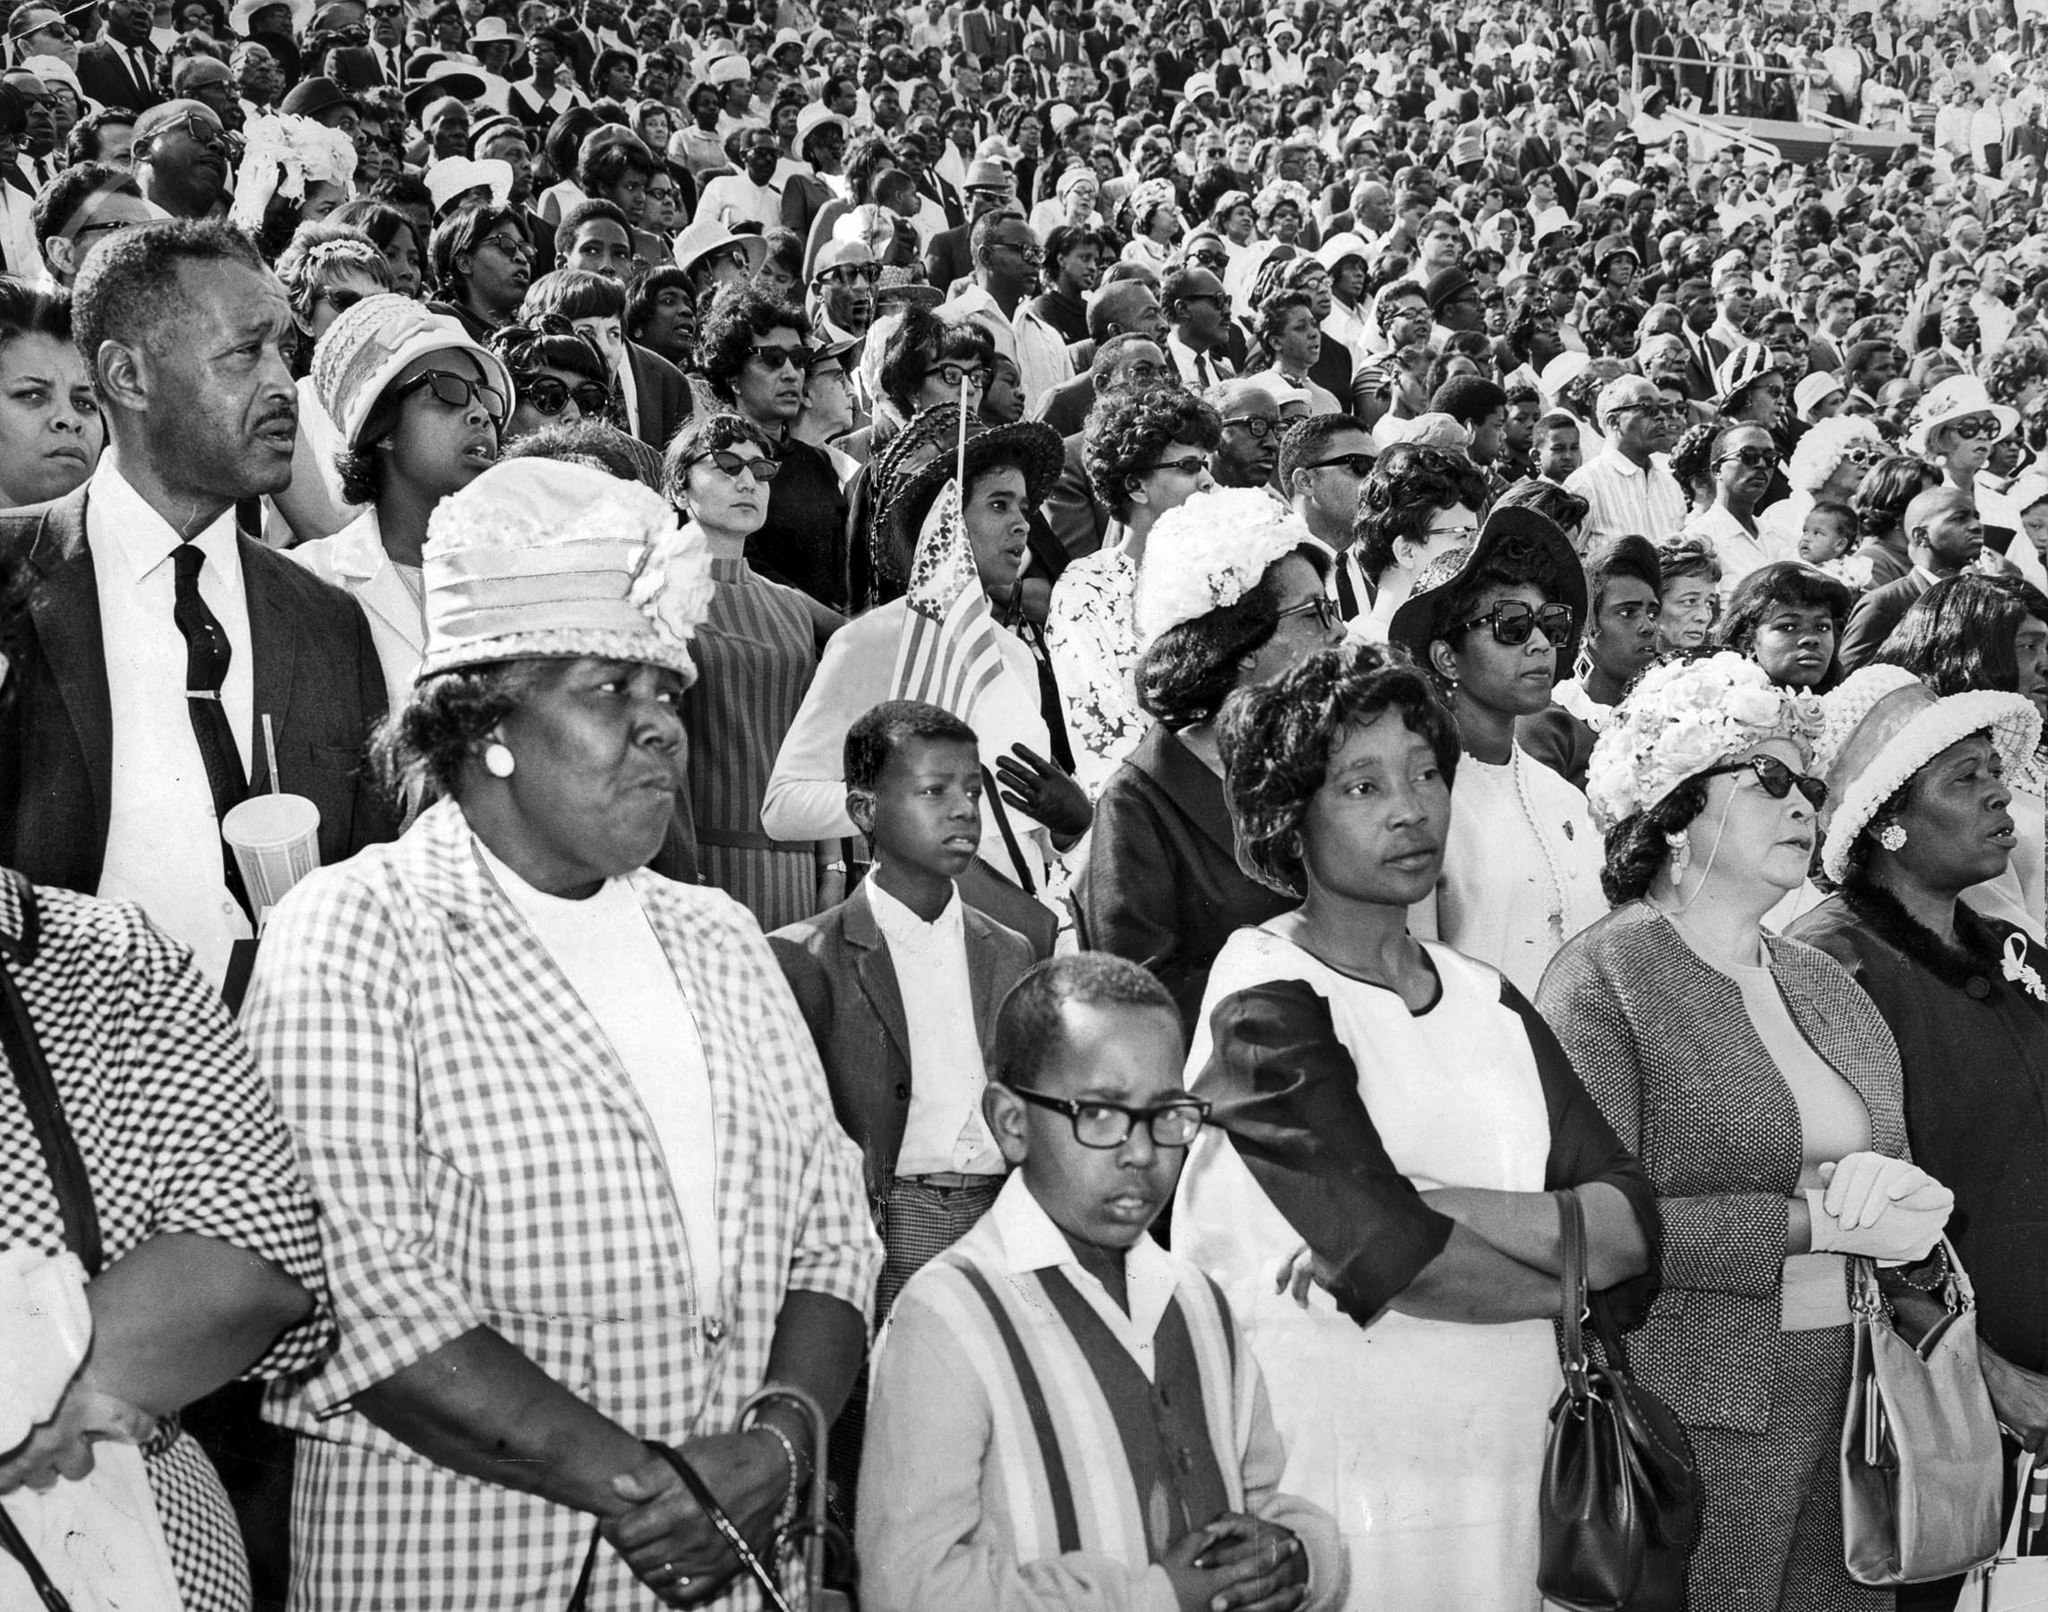 Apr. 7, 1968: A crowd of over 20,000 attends memorial at the Coliseum for Dr. Martin Luther King fol